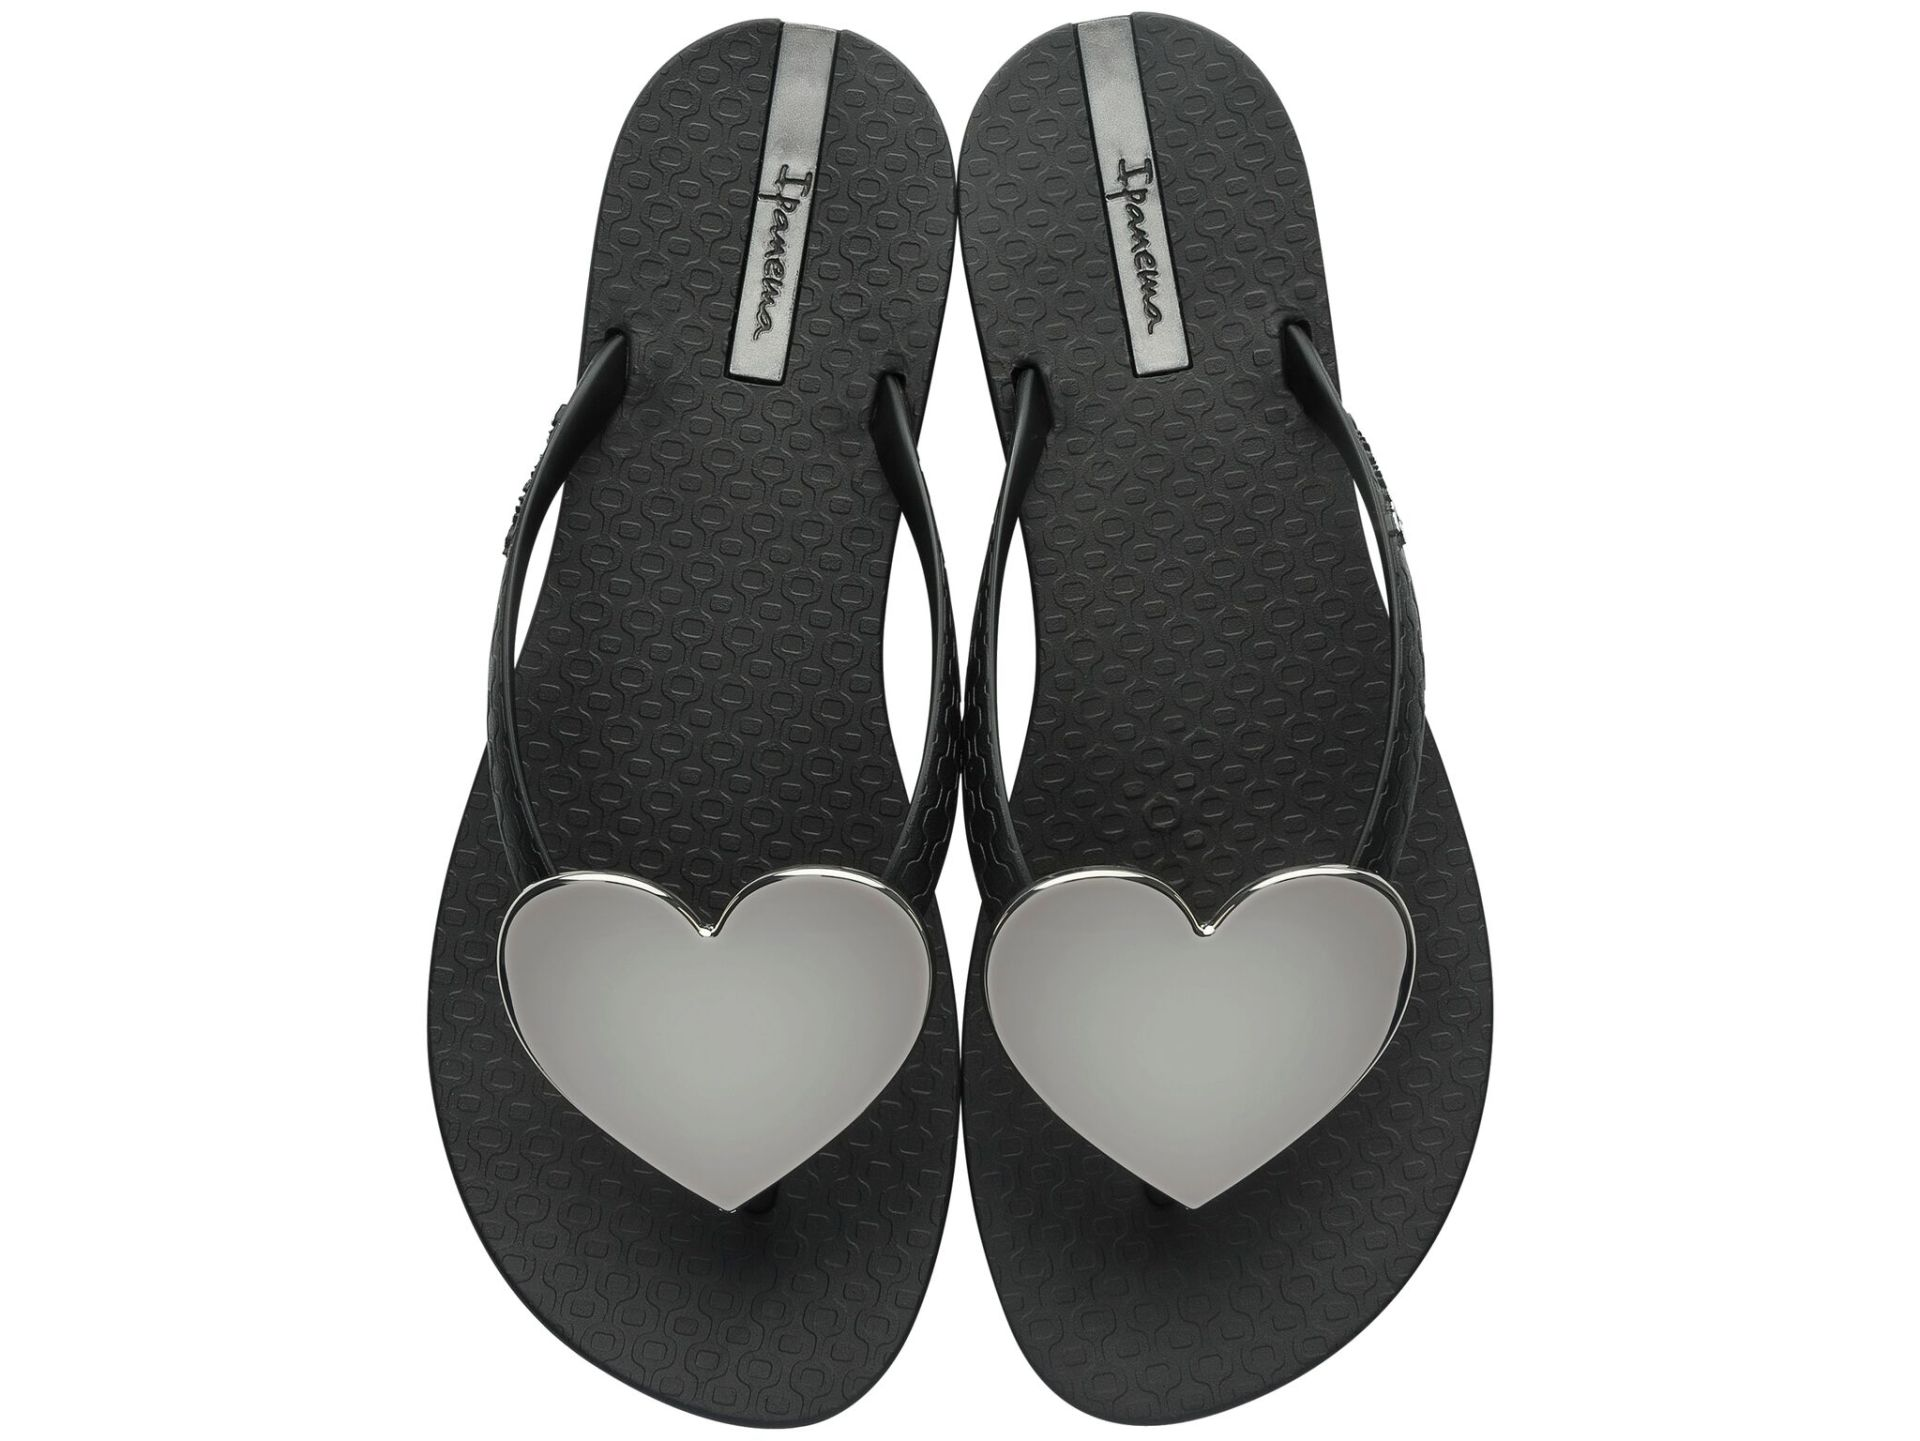 741e47e0cbb8cc Here at last! New Range of Ipanema  Rider  and Zaxy sandals and flip ...